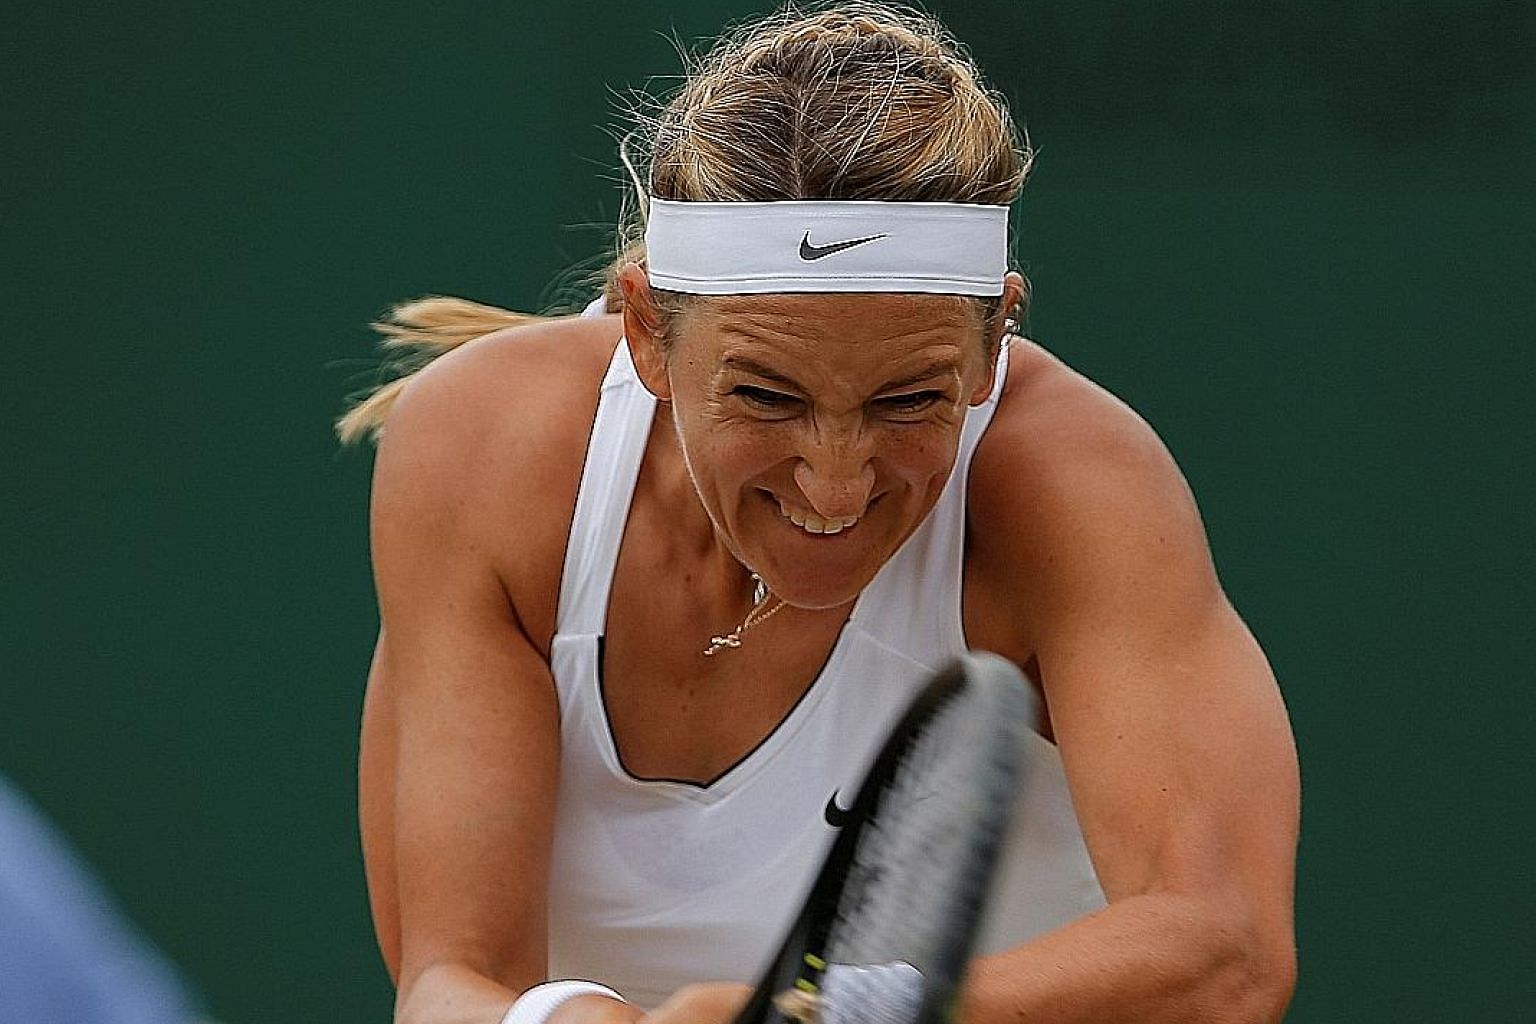 Two-time Grand Slam champion Victoria Azarenka is adamant that she will not go anywhere without her son and will miss tournaments while legal processes prevent her from taking eight-month-old Leo out of California.